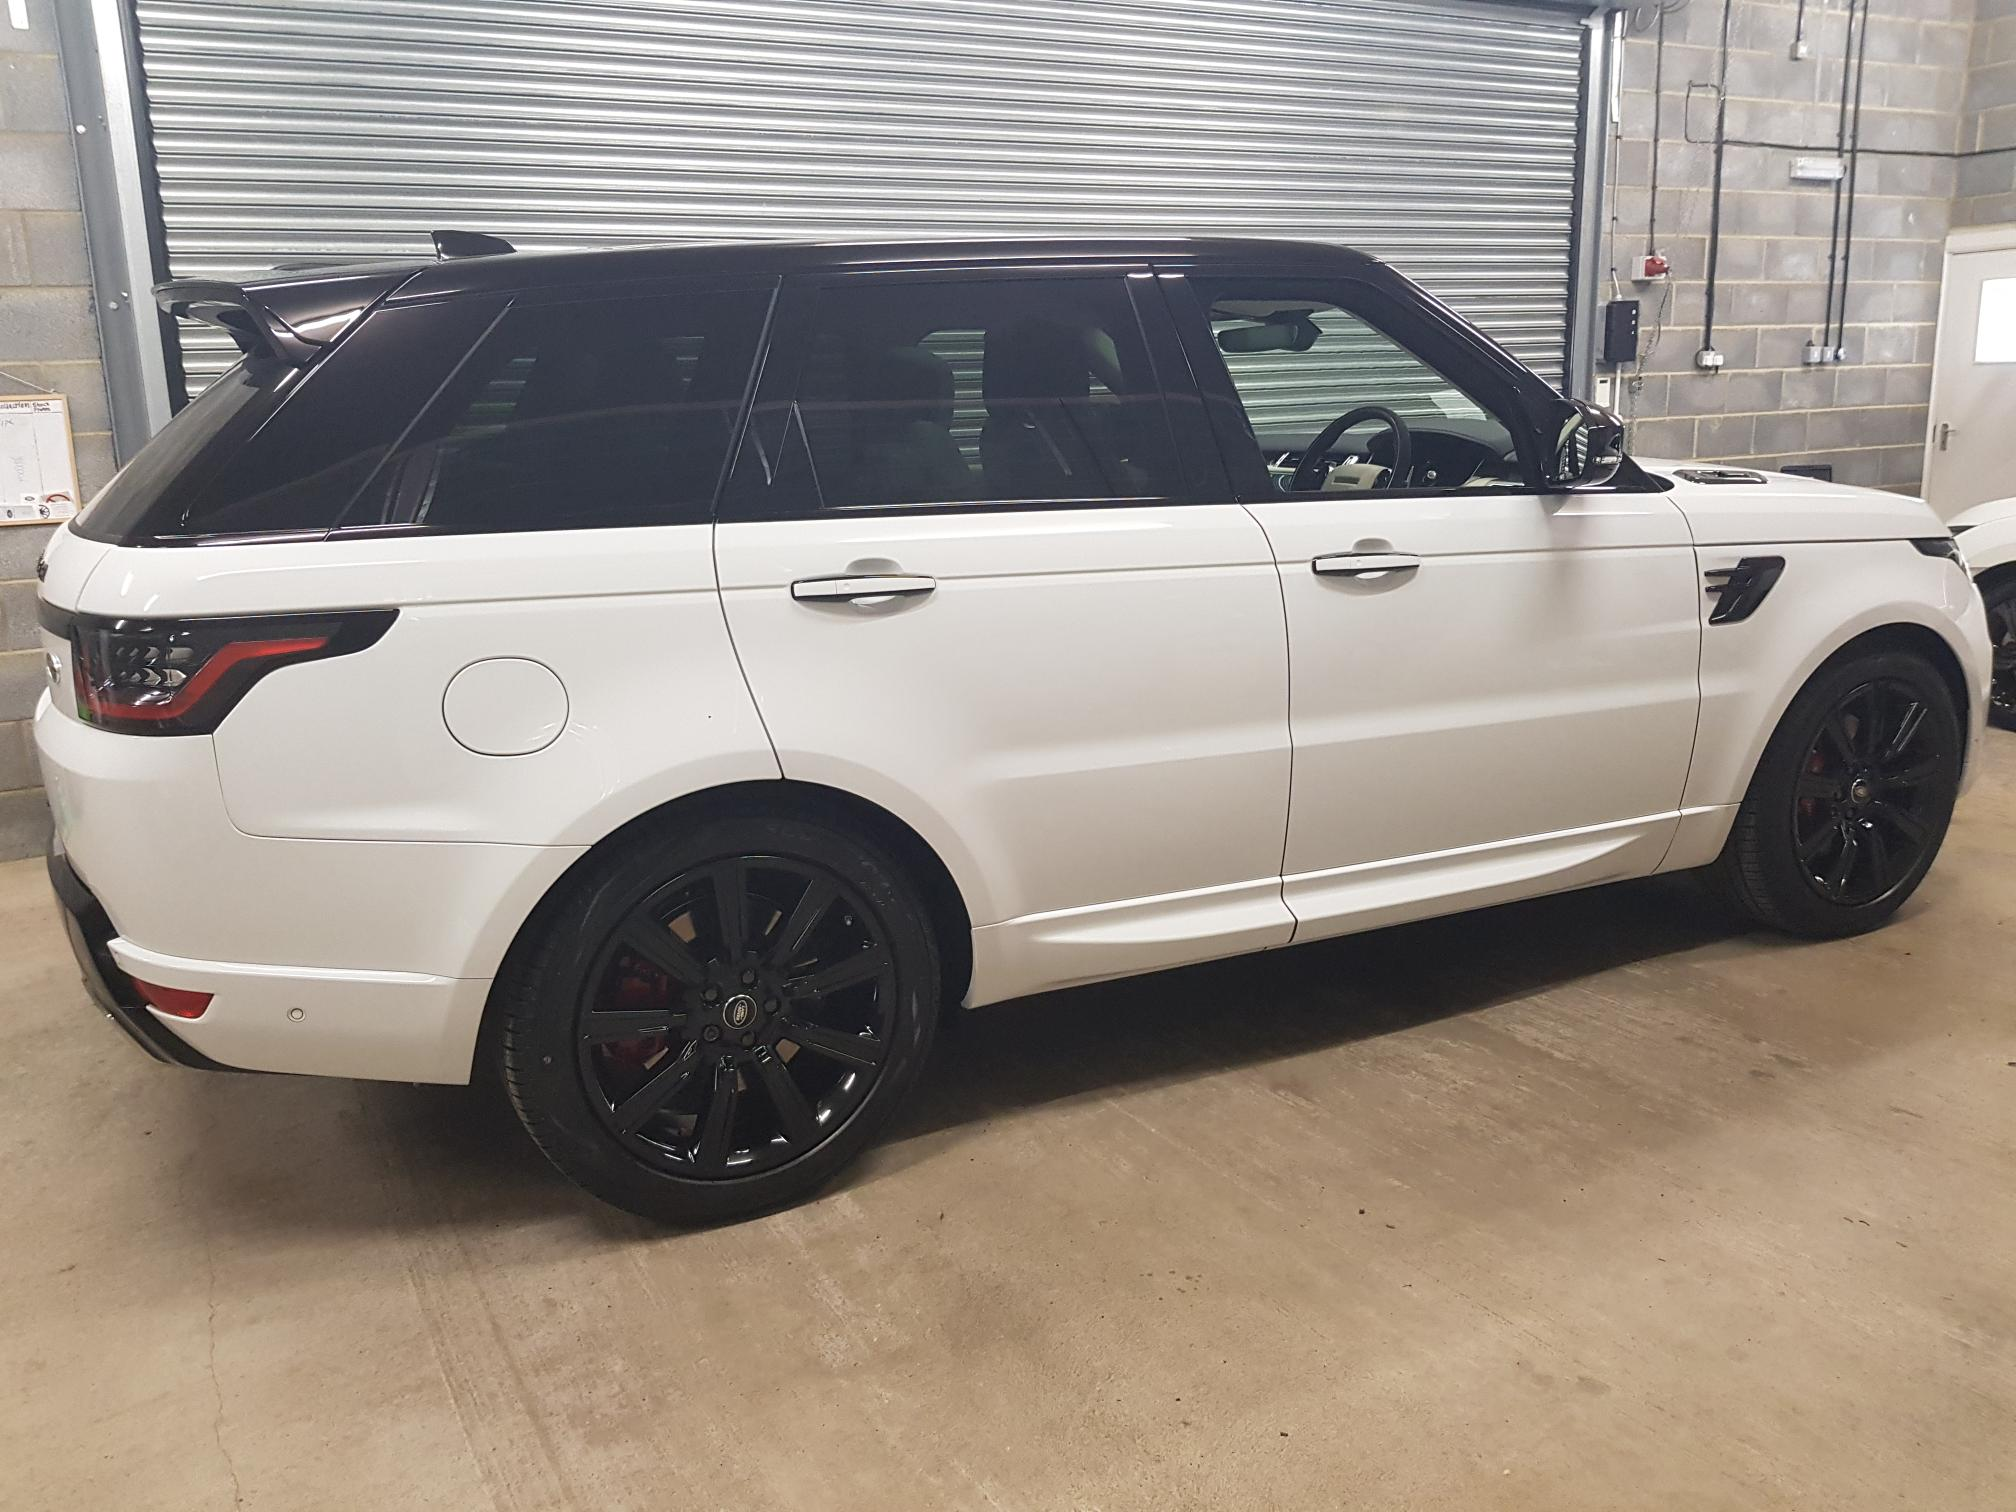 Range Rover Sport Range Rover Sport P400e Plug-in Hybrid Electric Vehicle 6